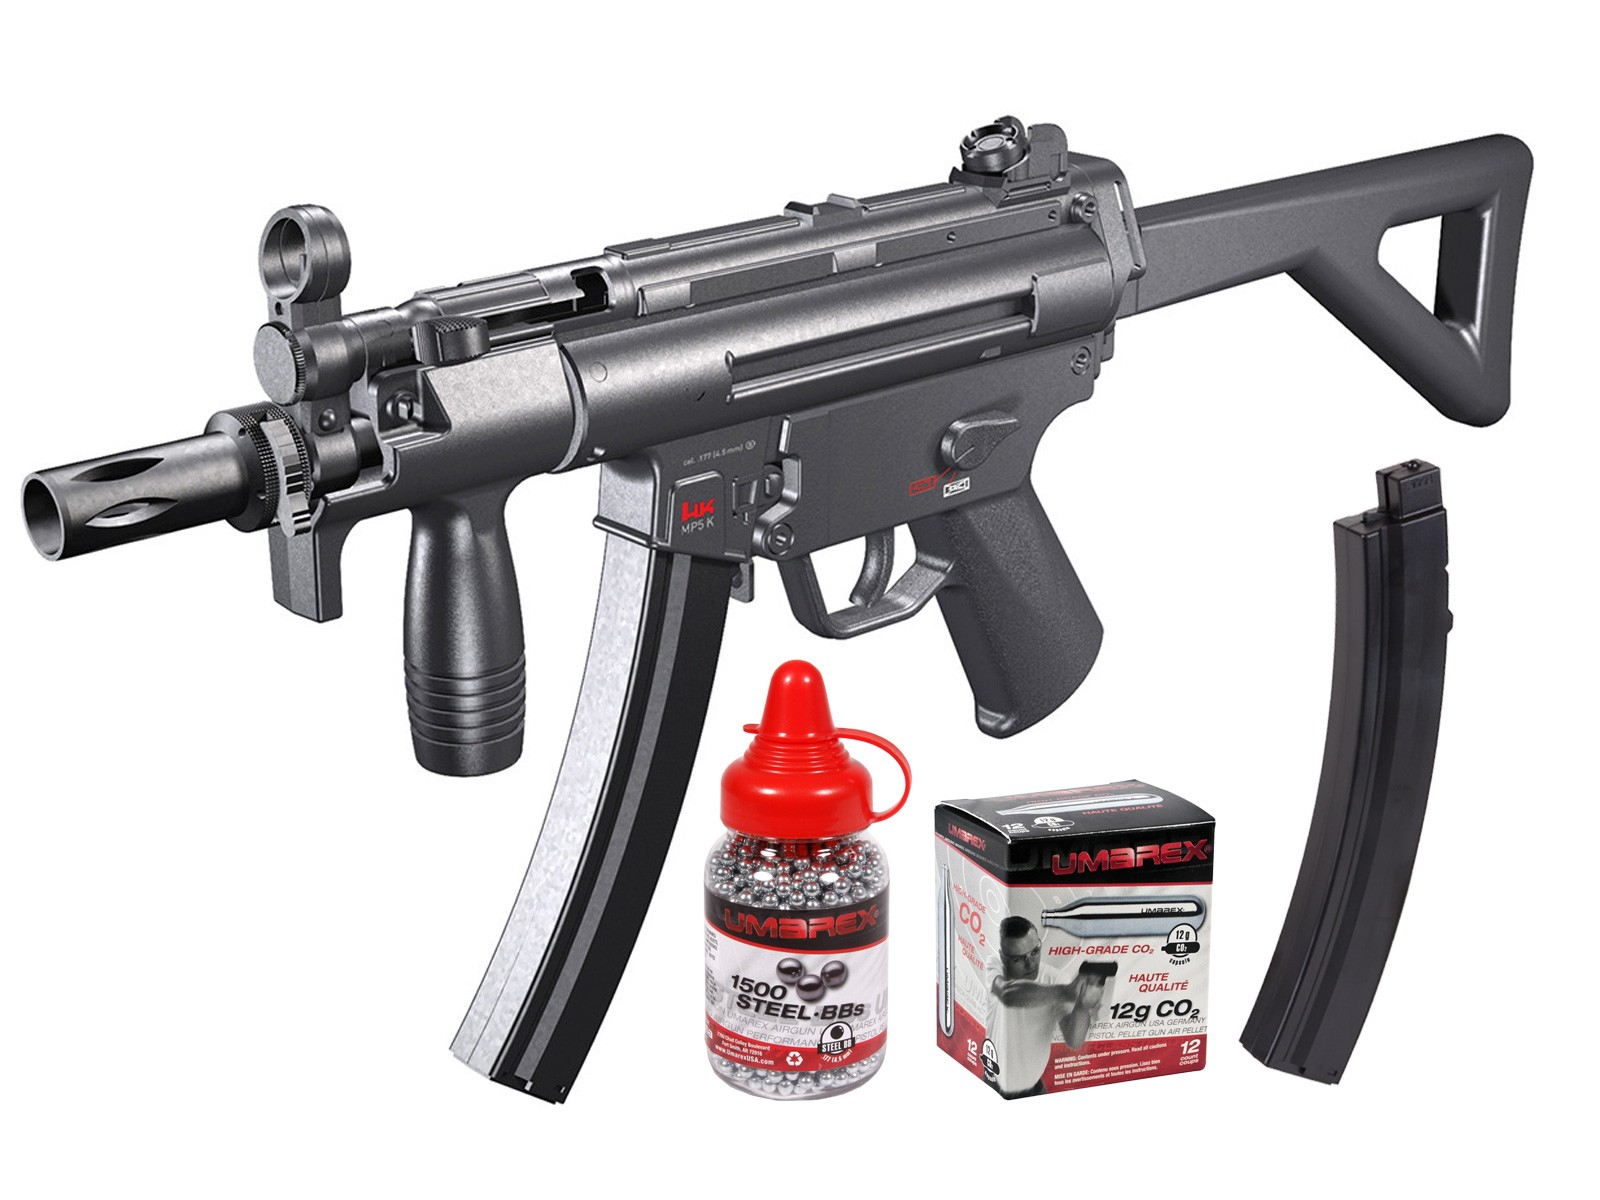 MP5 Silver Storm.